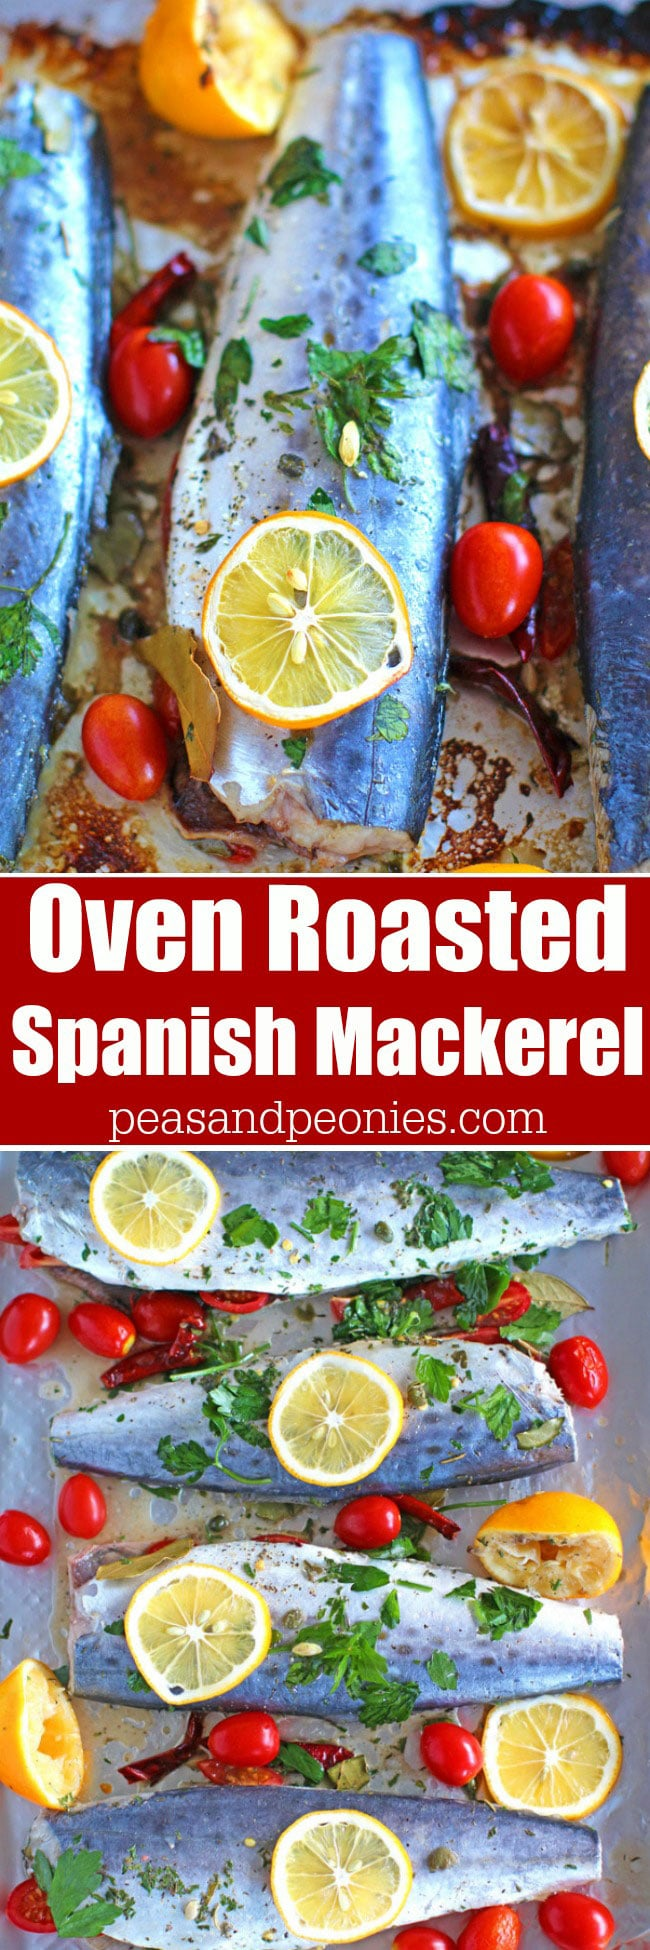 Oven Roasted Spanish Mackerel marinated with grape tomatoes, capers, dried chili peppers and lemon is one very tasty and easy meals to make.